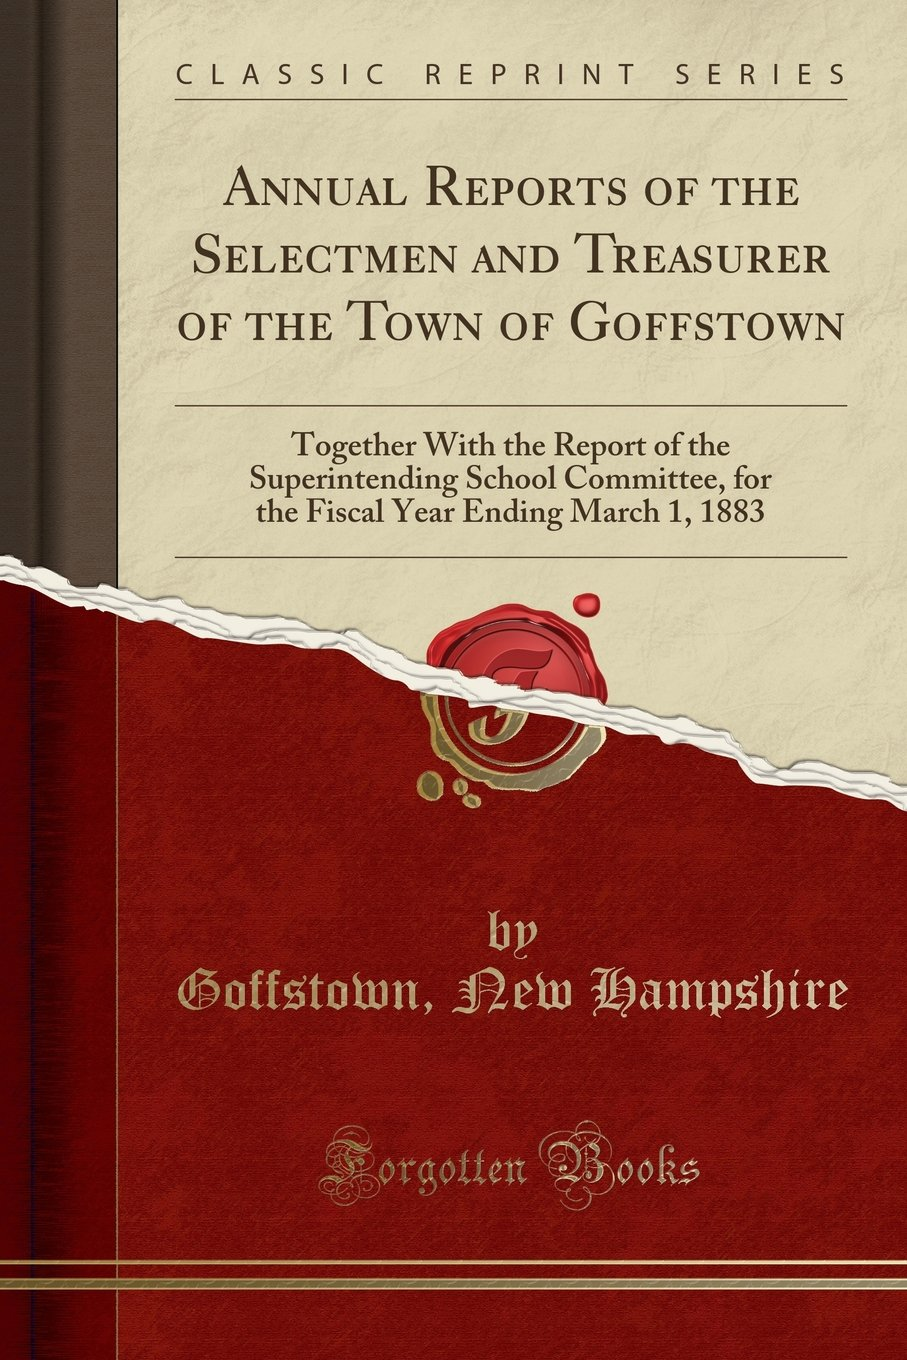 Download Annual Reports of the Selectmen and Treasurer of the Town of Goffstown: Together with the Report of the Superintending School Committee, for the Fiscal Year Ending March 1, 1883 (Classic Reprint) pdf